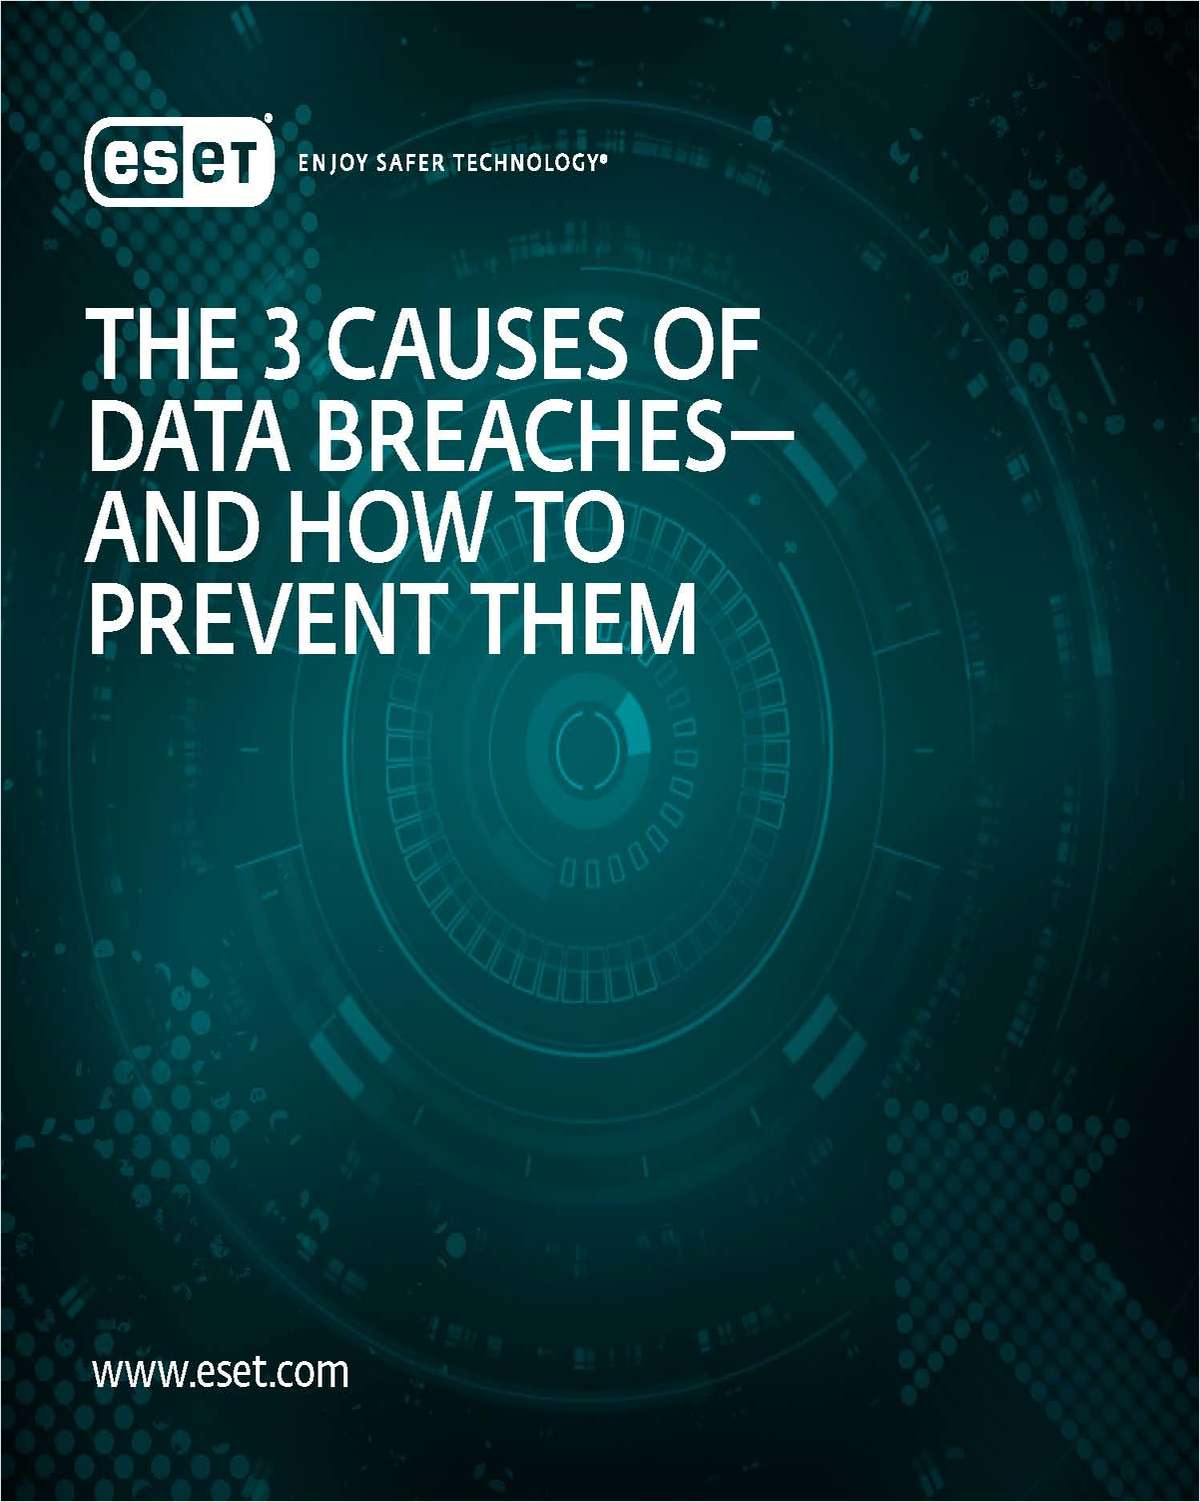 The 3 Causes of Data Breaches and How to Prevent Them